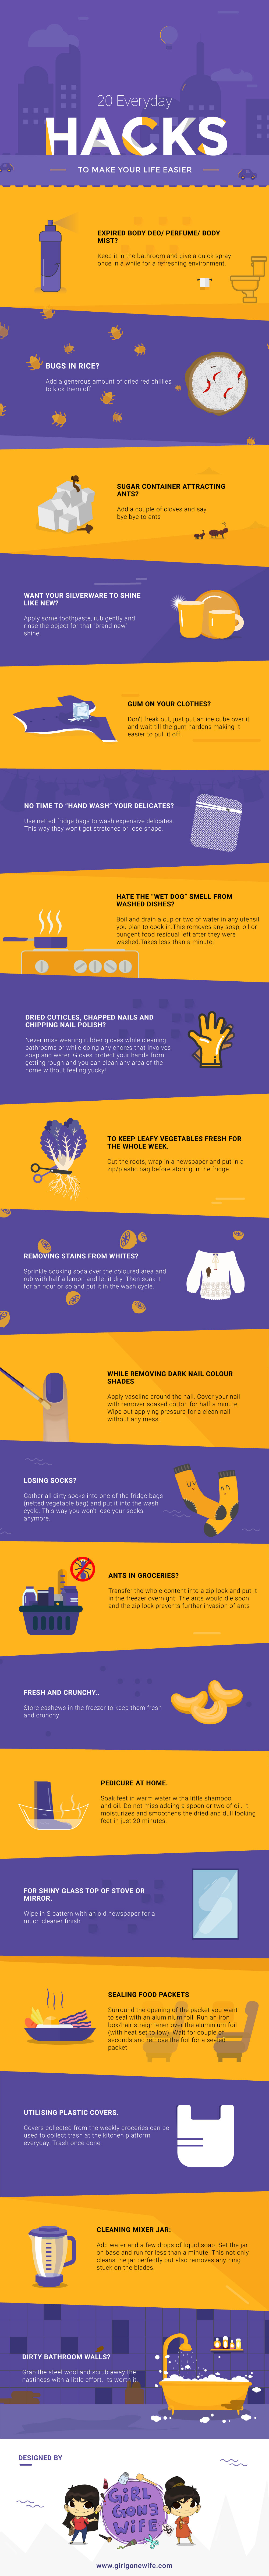 Life Changing Hacks For Your Everyday Life - Infographic